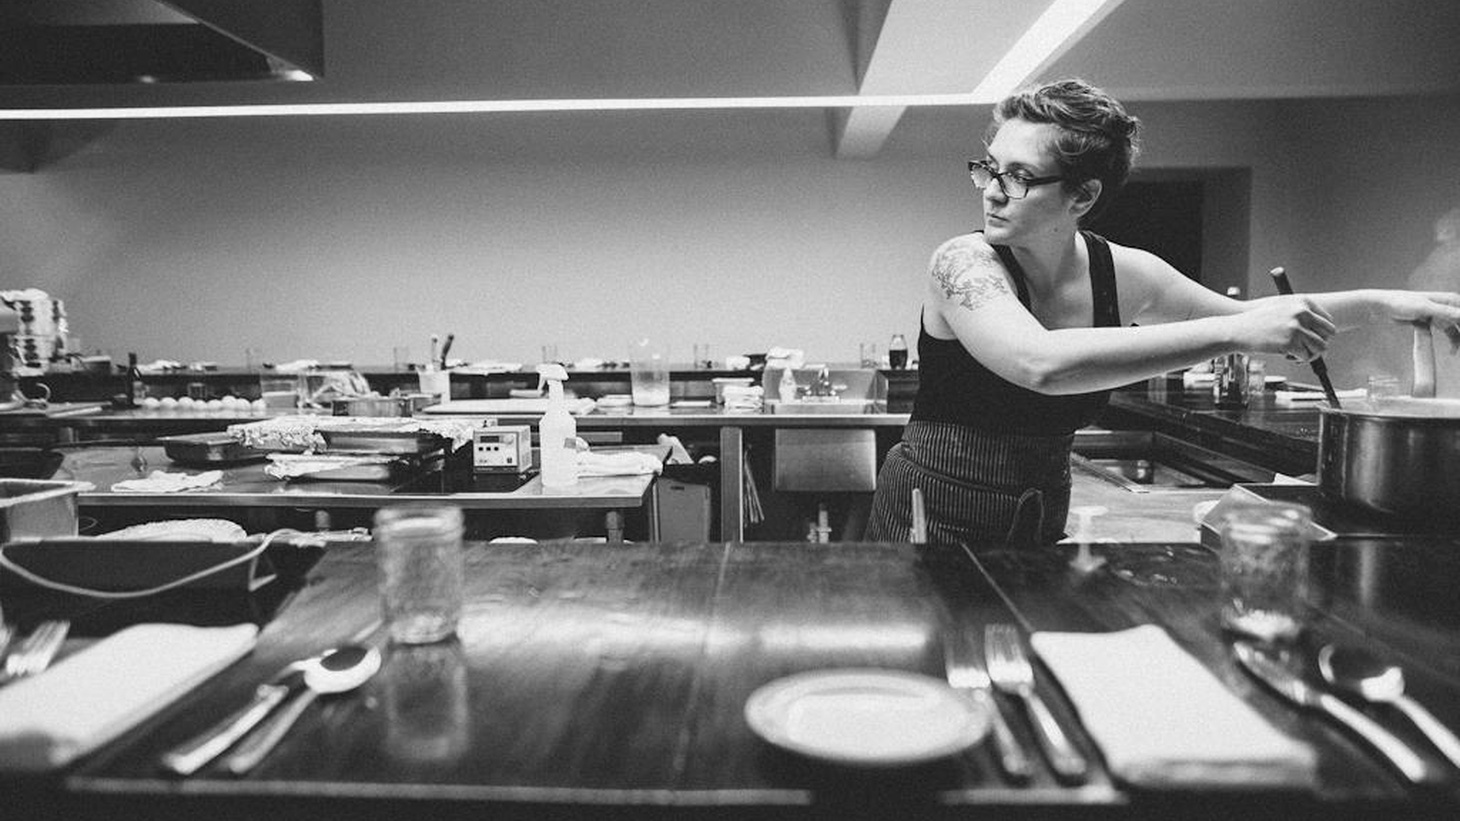 Lisa Donovan prepares for a Buttermilk Road Sunday Supper at The Catbird Seat Restaurant in Nashville, 2014.